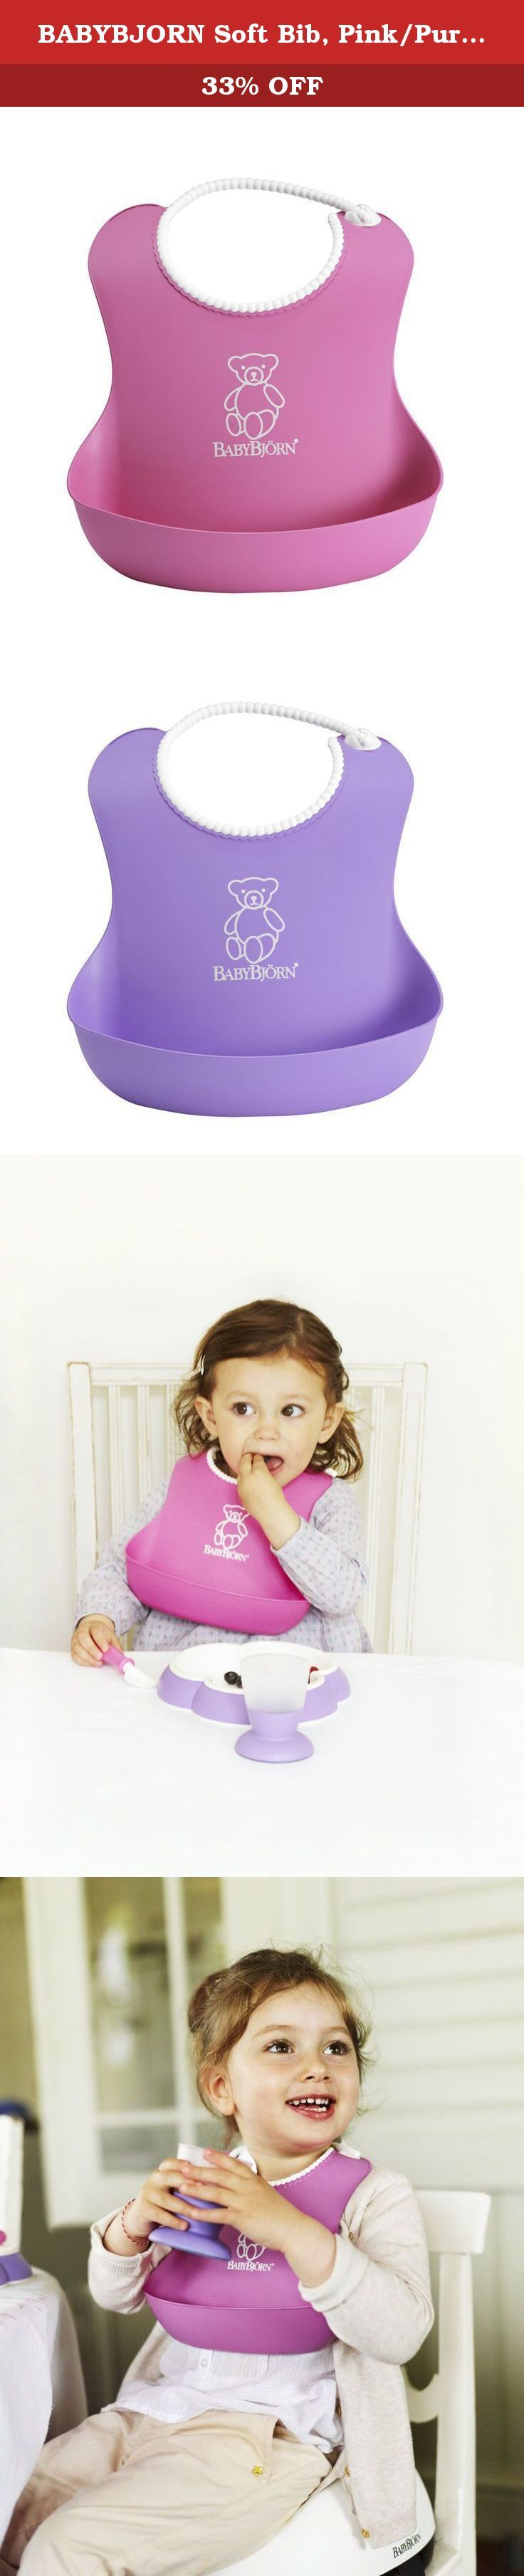 BABYBJORN Soft Bib, Pink/Purple, 2 Pack. The BabyBjorn soft bib is soft and comfortable plastic bib catches food that misses your child's mouth. The bib is easy to clean and the fast-drying plastic means that you can use it again quickly. Suitable from four months.